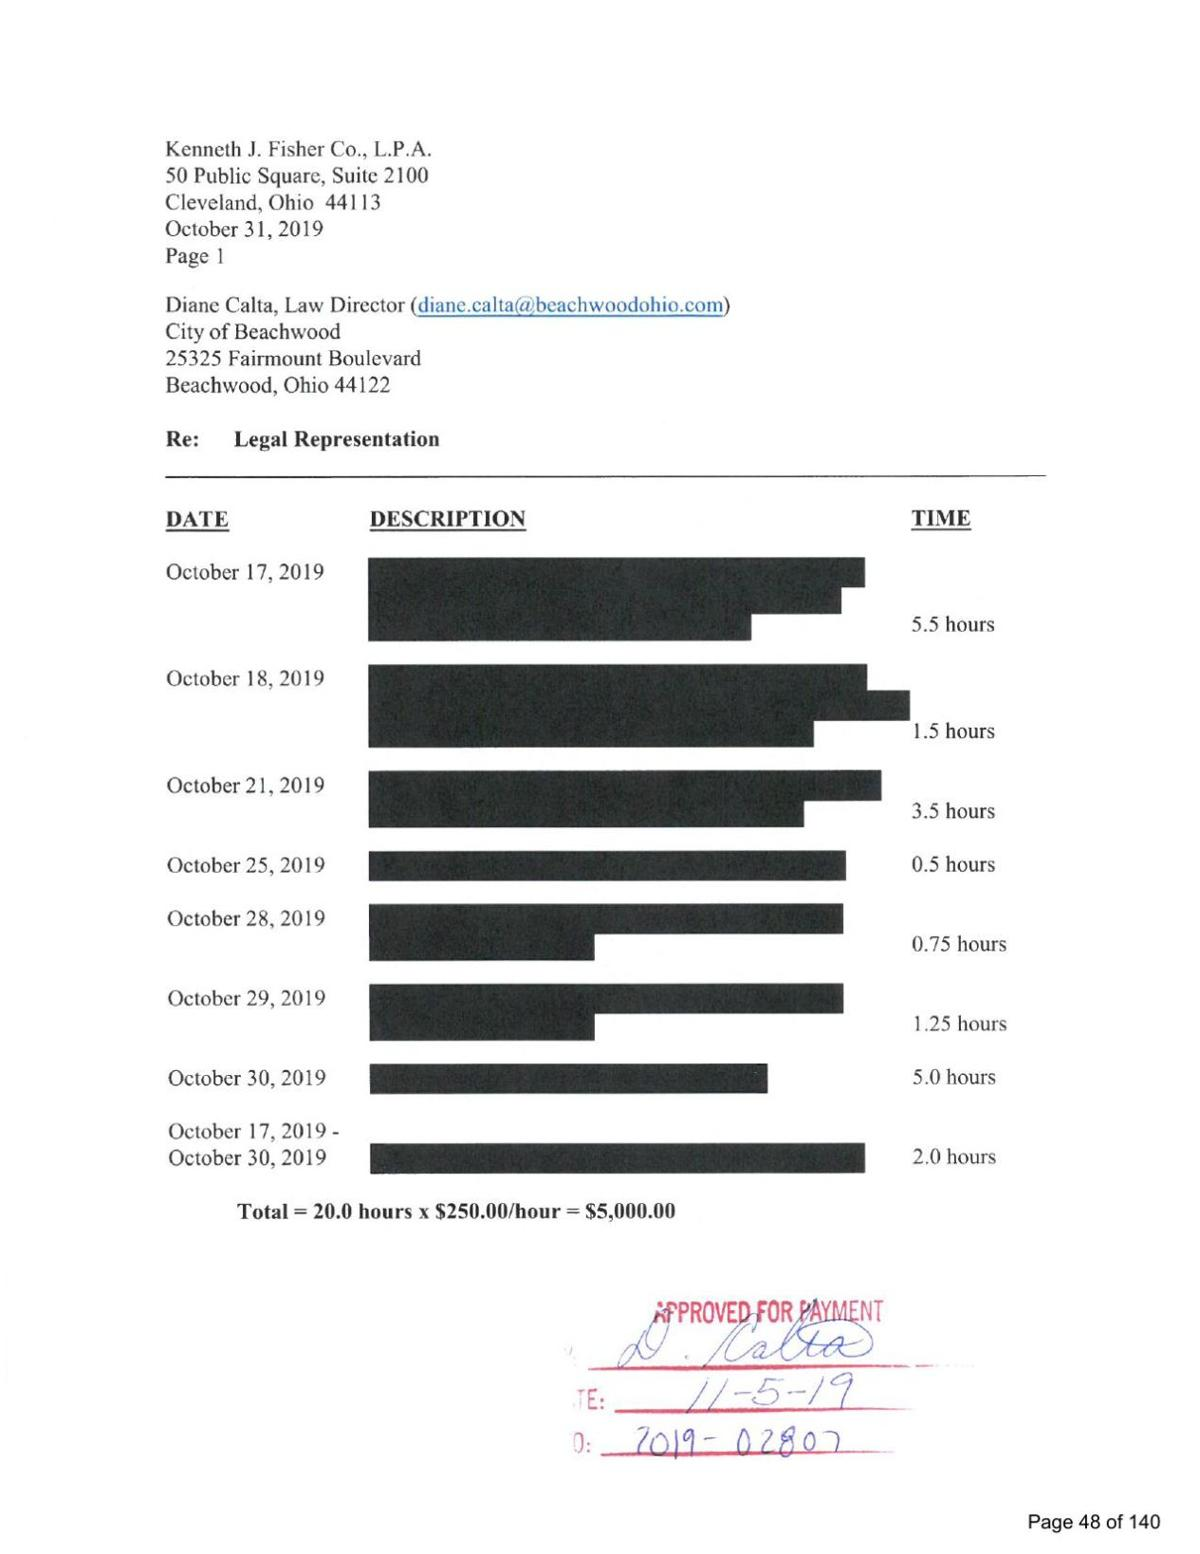 Invoice for Kenneth J. Fisher